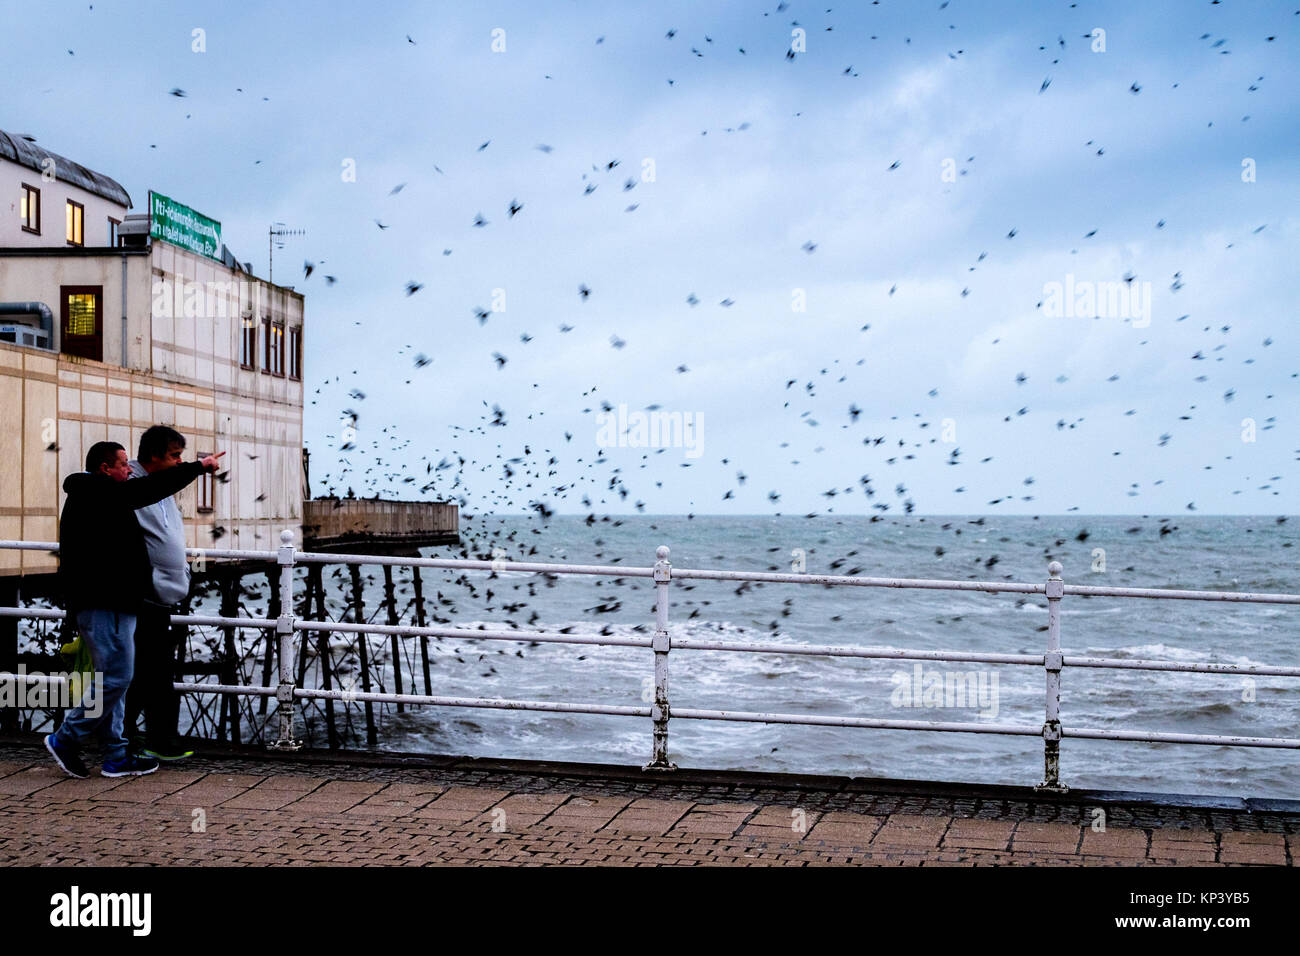 Aberystwyth, Wales, UK. 13 December 2017 UK Weather: On a blustery and grey December evening in Aberystwyth, Wales, - Stock Image